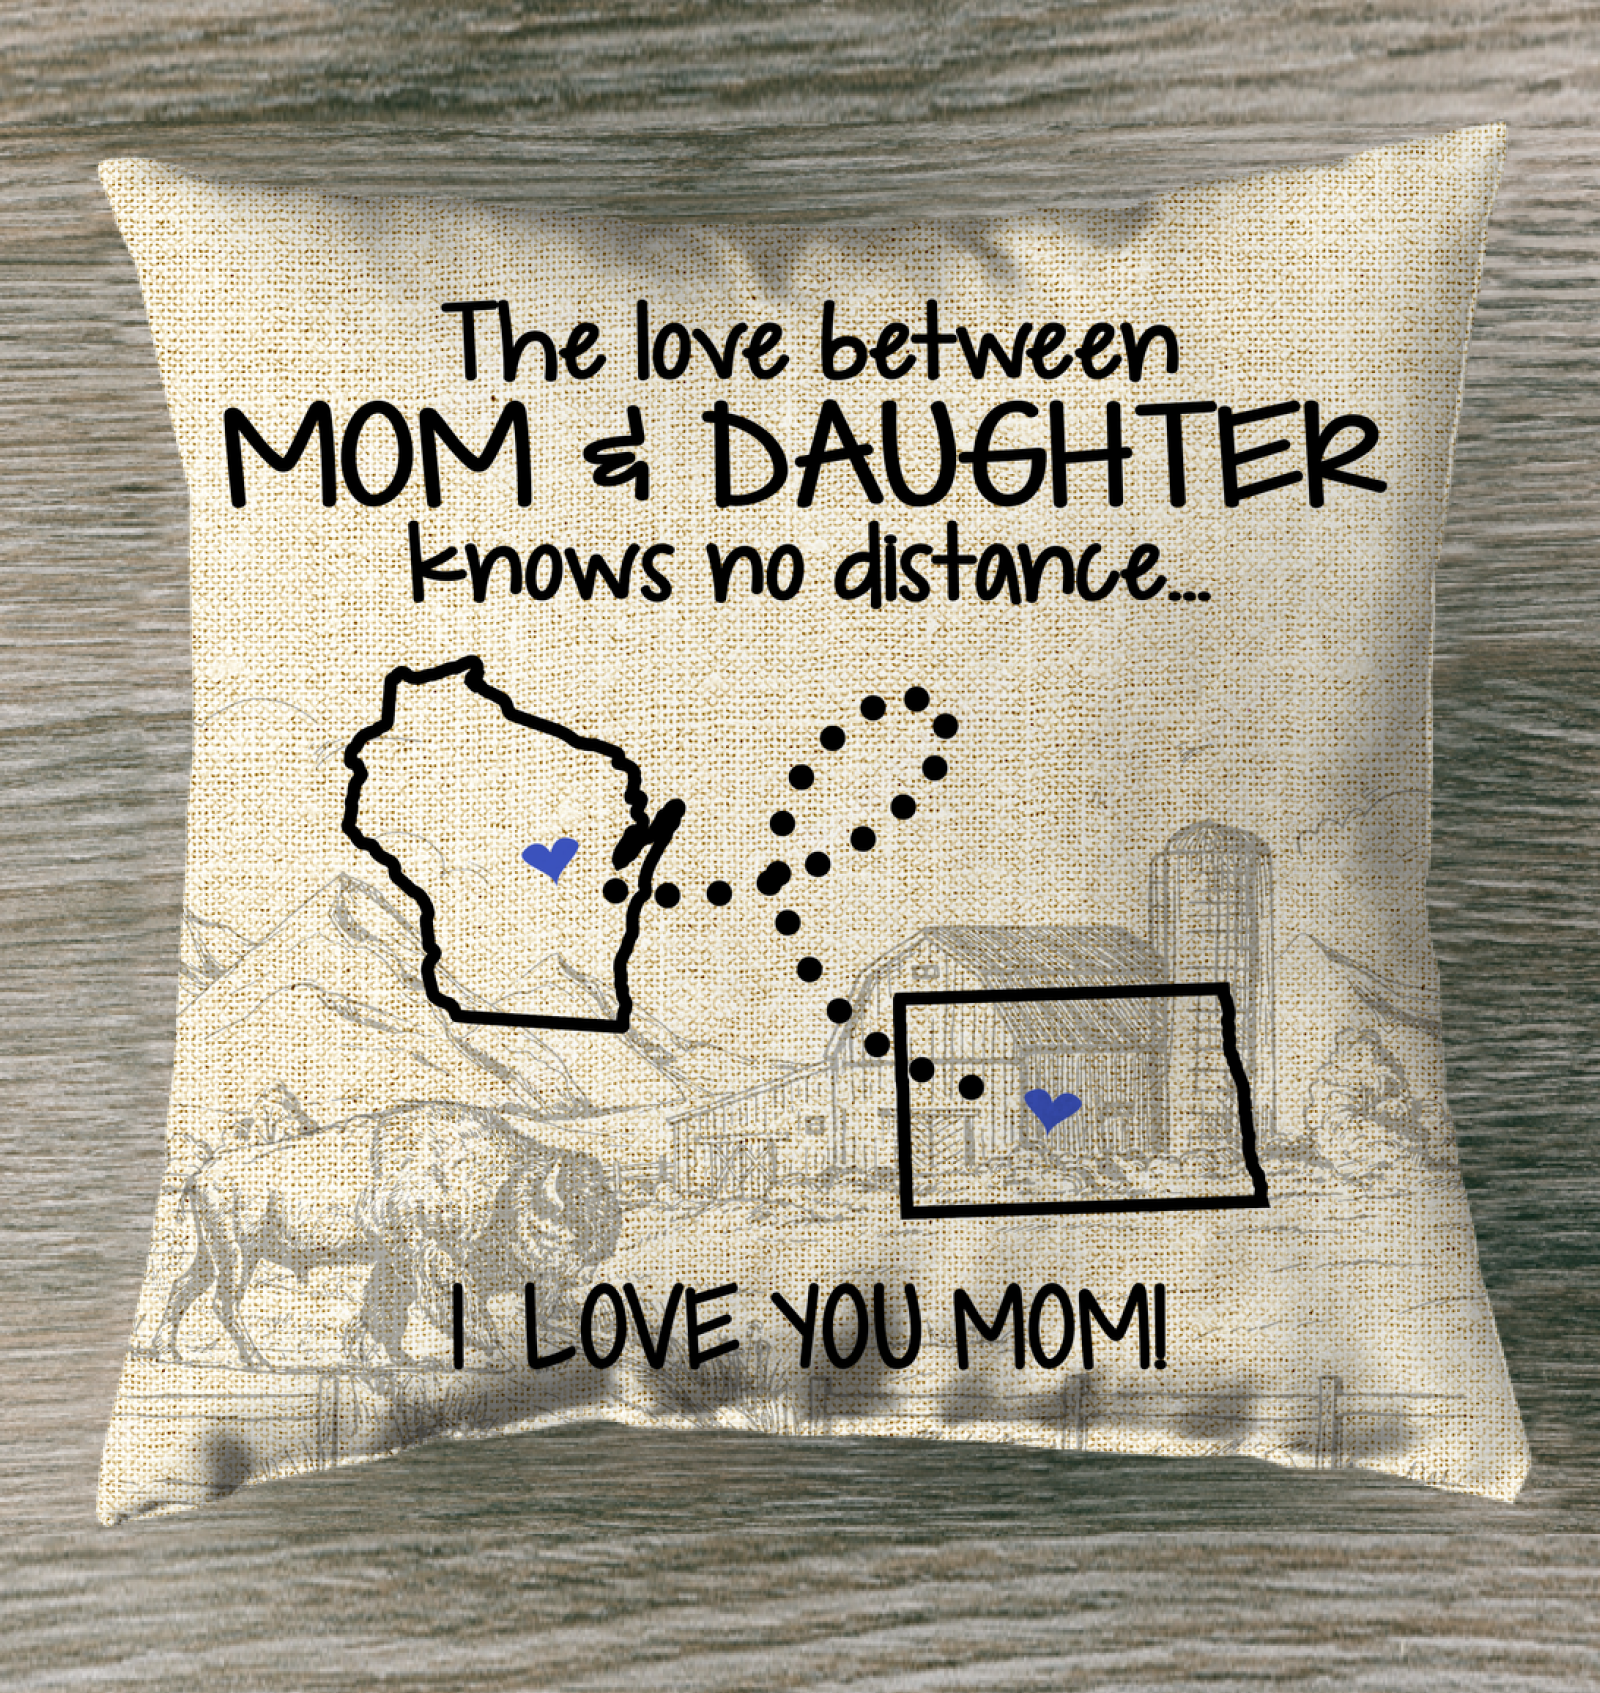 NORTH DAKOTA WISCONSIN THE LOVE MOM AND DAUGHTER KNOWS NO DISTANCE